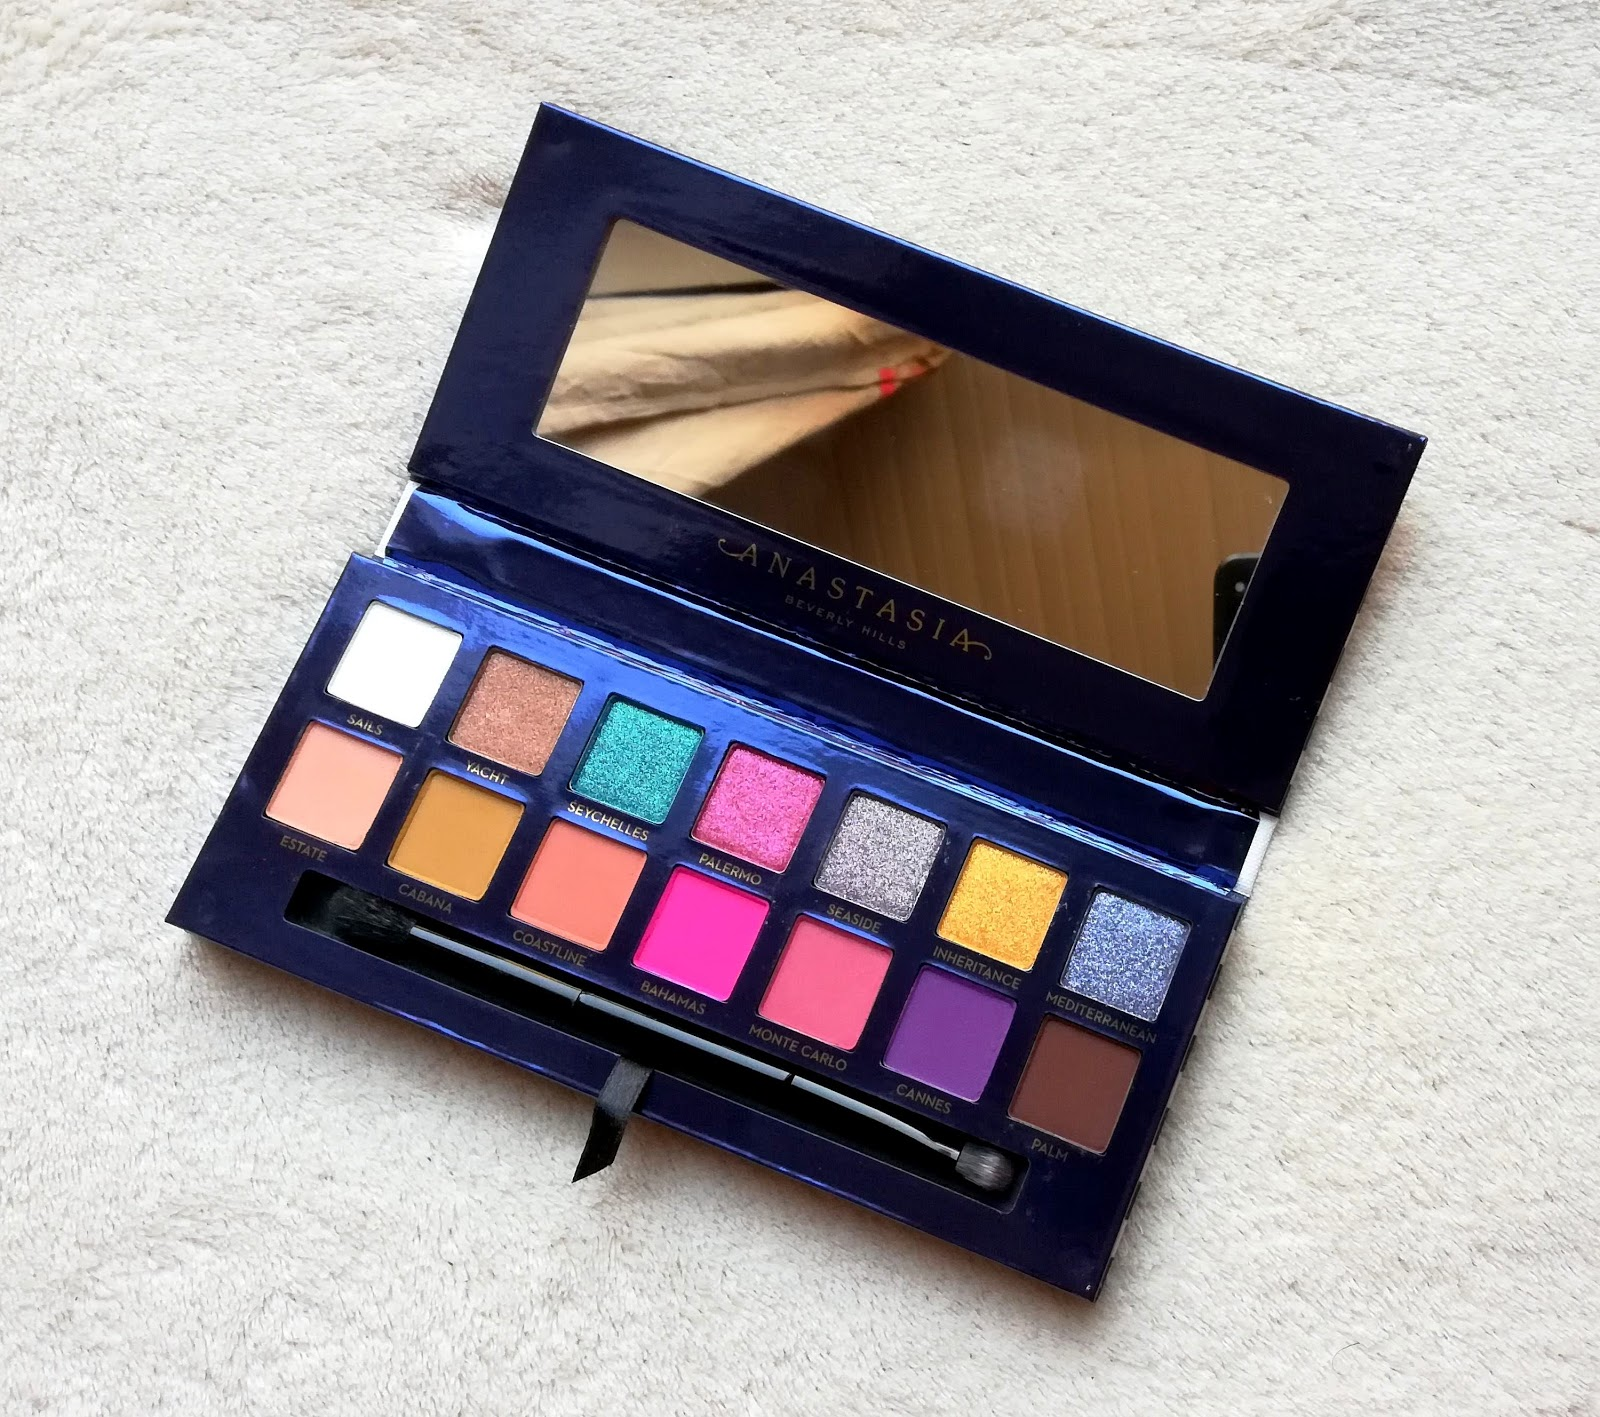 La Riviera palette d'ANASTASIA BEVERLY HILLS! Swatch & make up